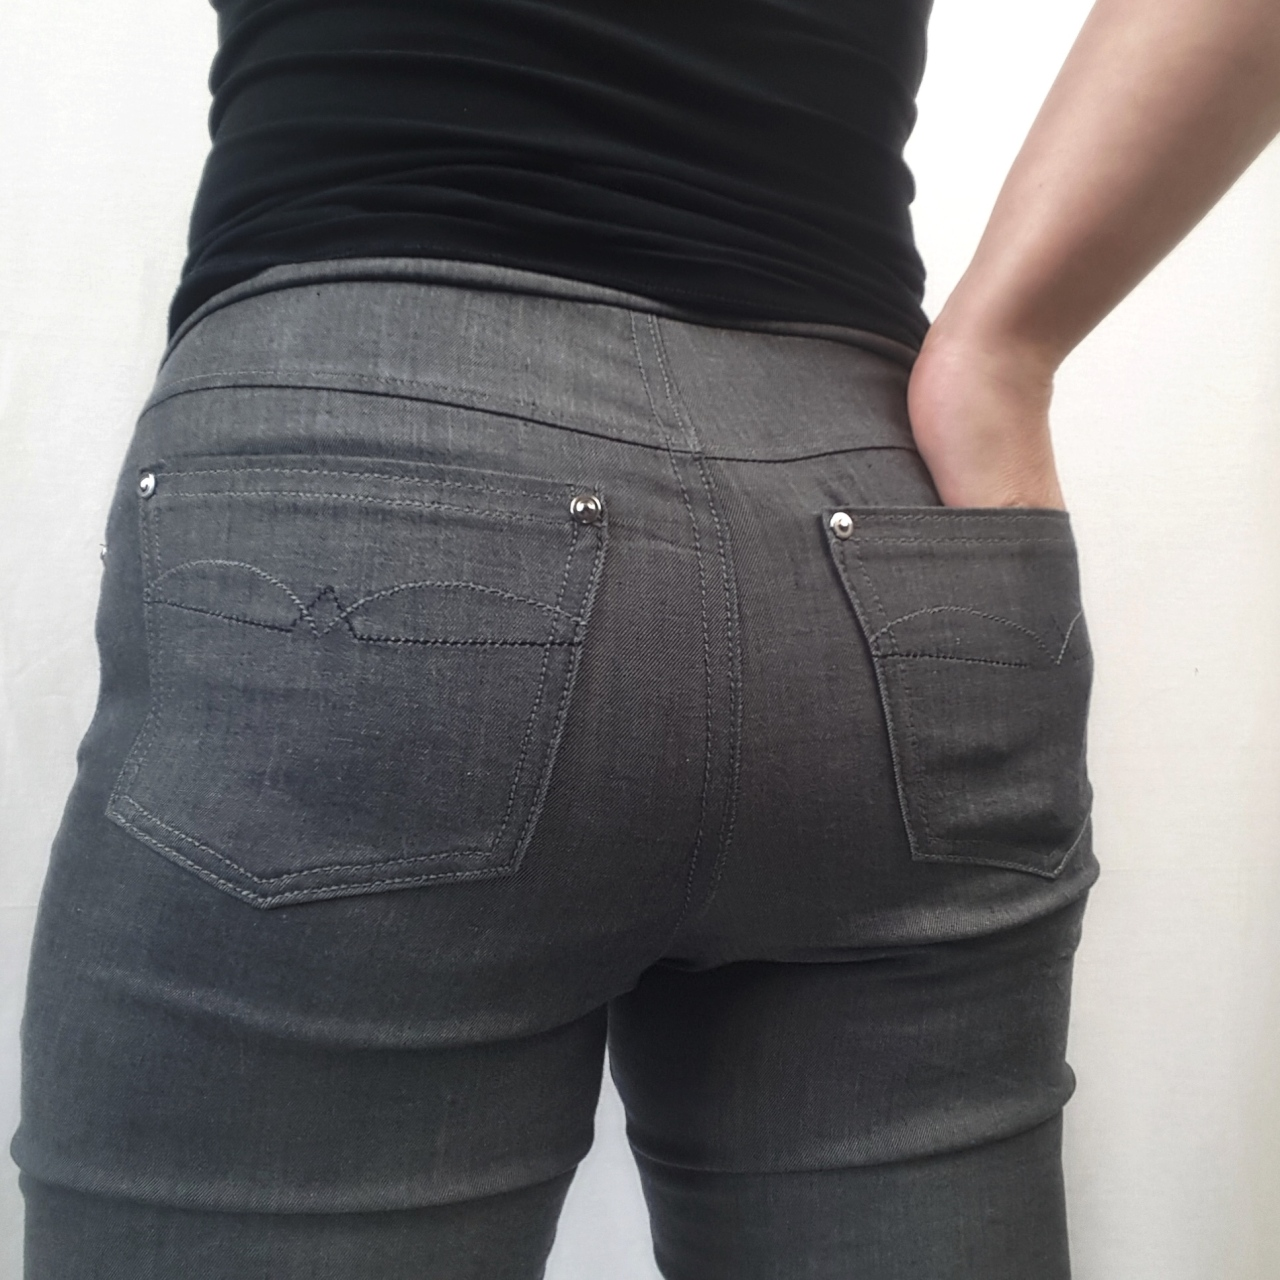 jalie eleanor jeans review